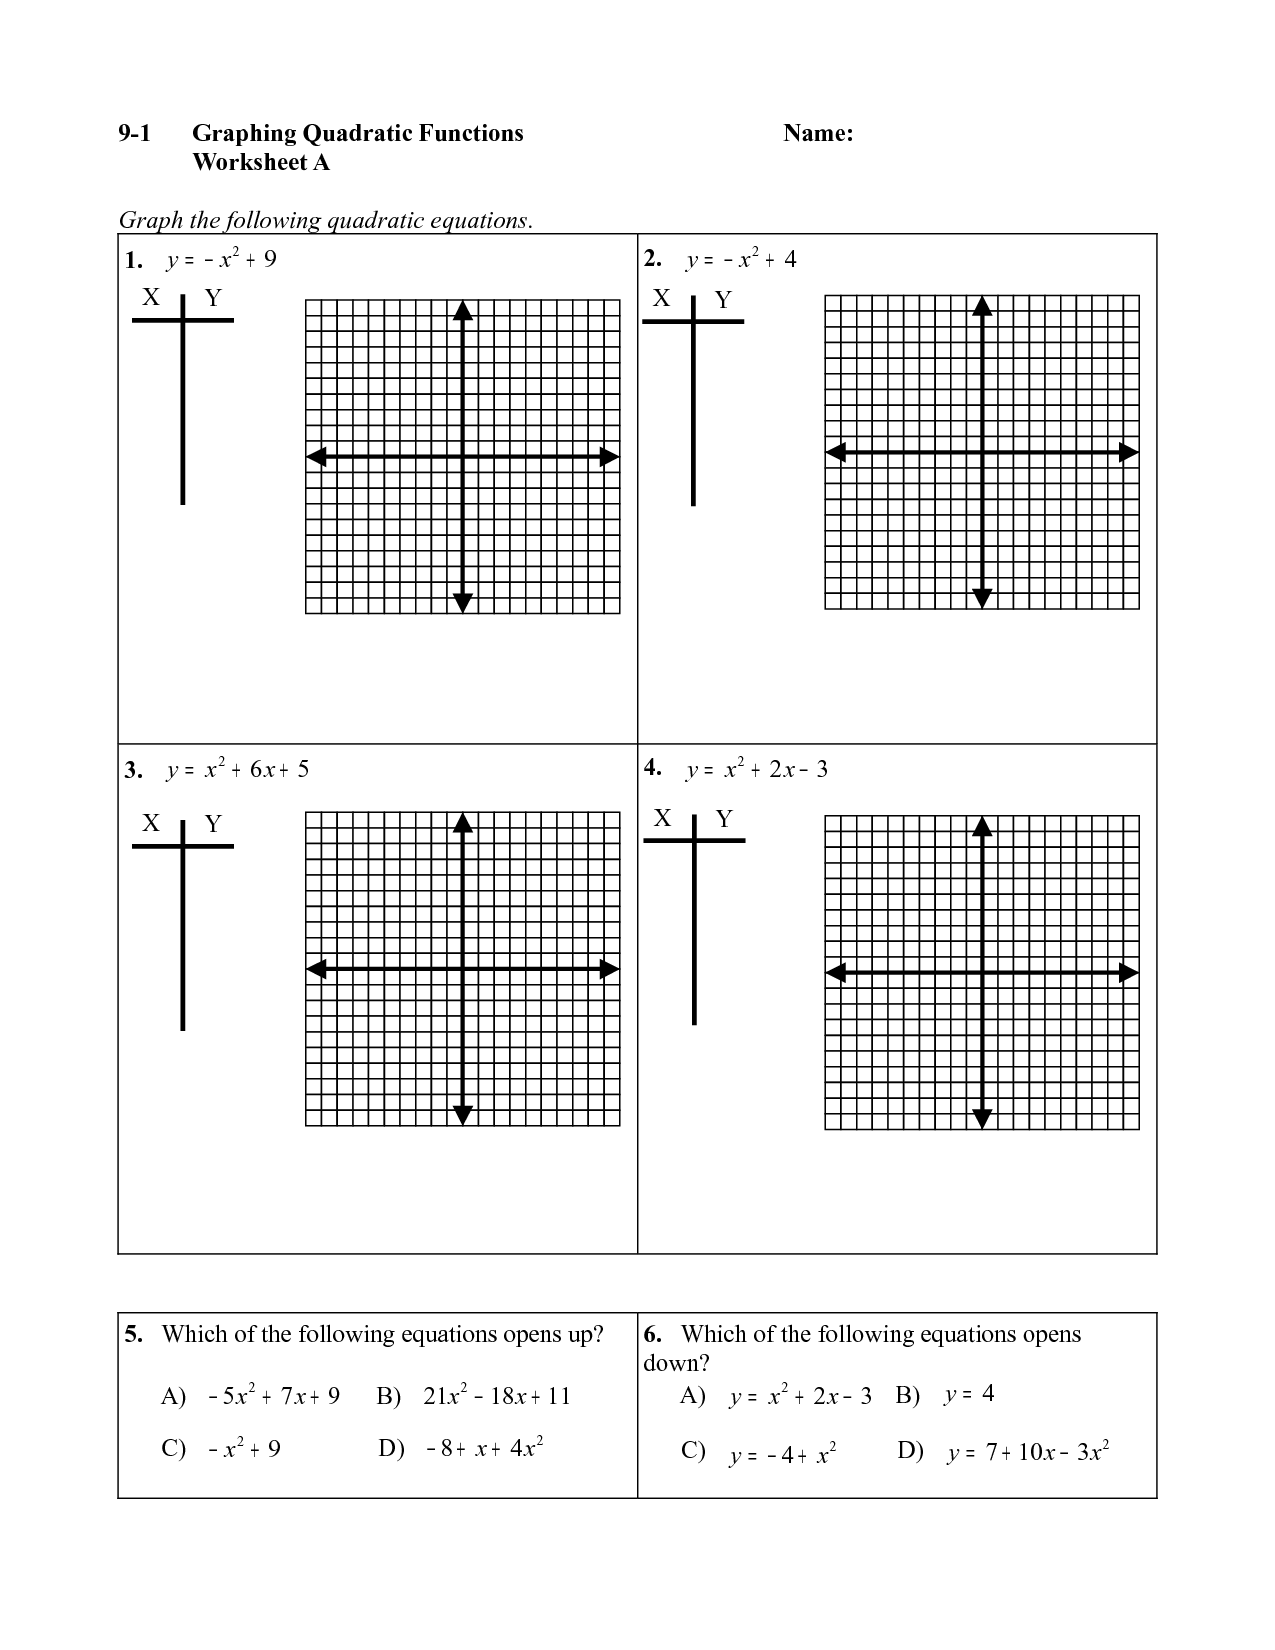 Graphing Quadratic Equations Worksheet